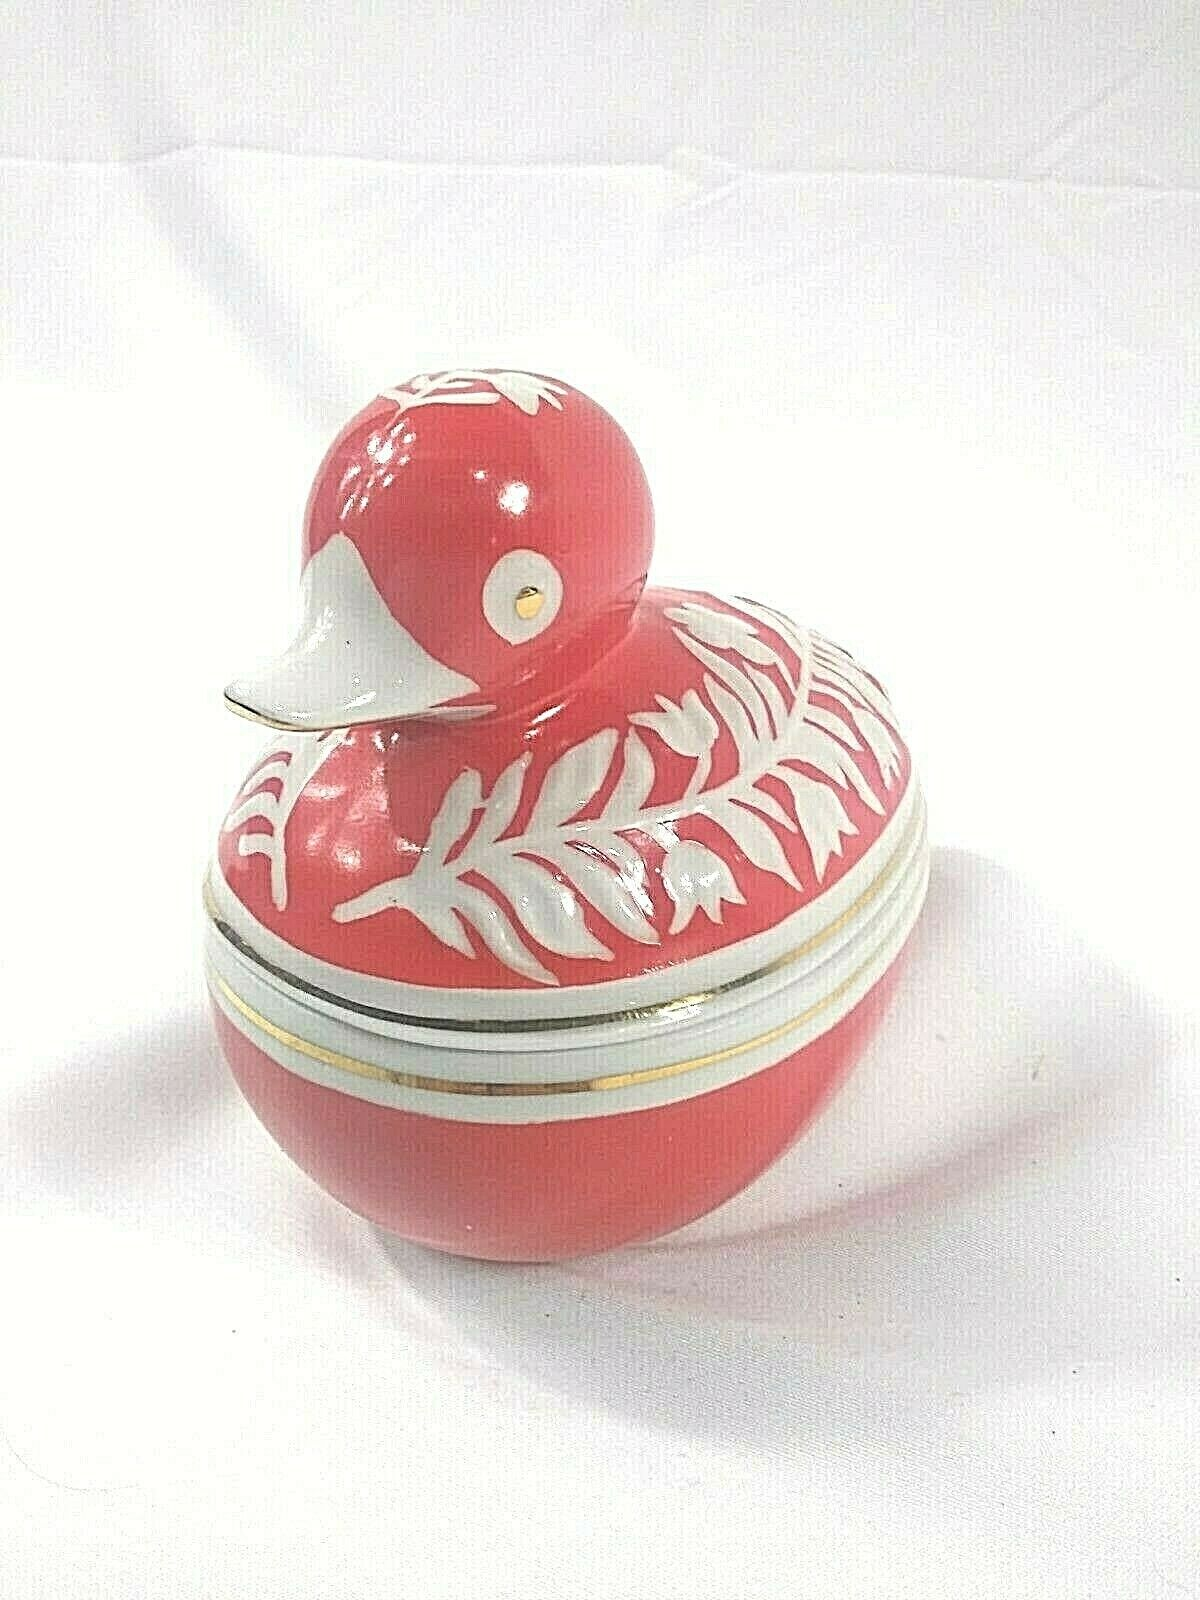 Charming Hollohaza Porcelain Duck Trinket Box, Hand Painted, Red, White, Gold  - $9.99